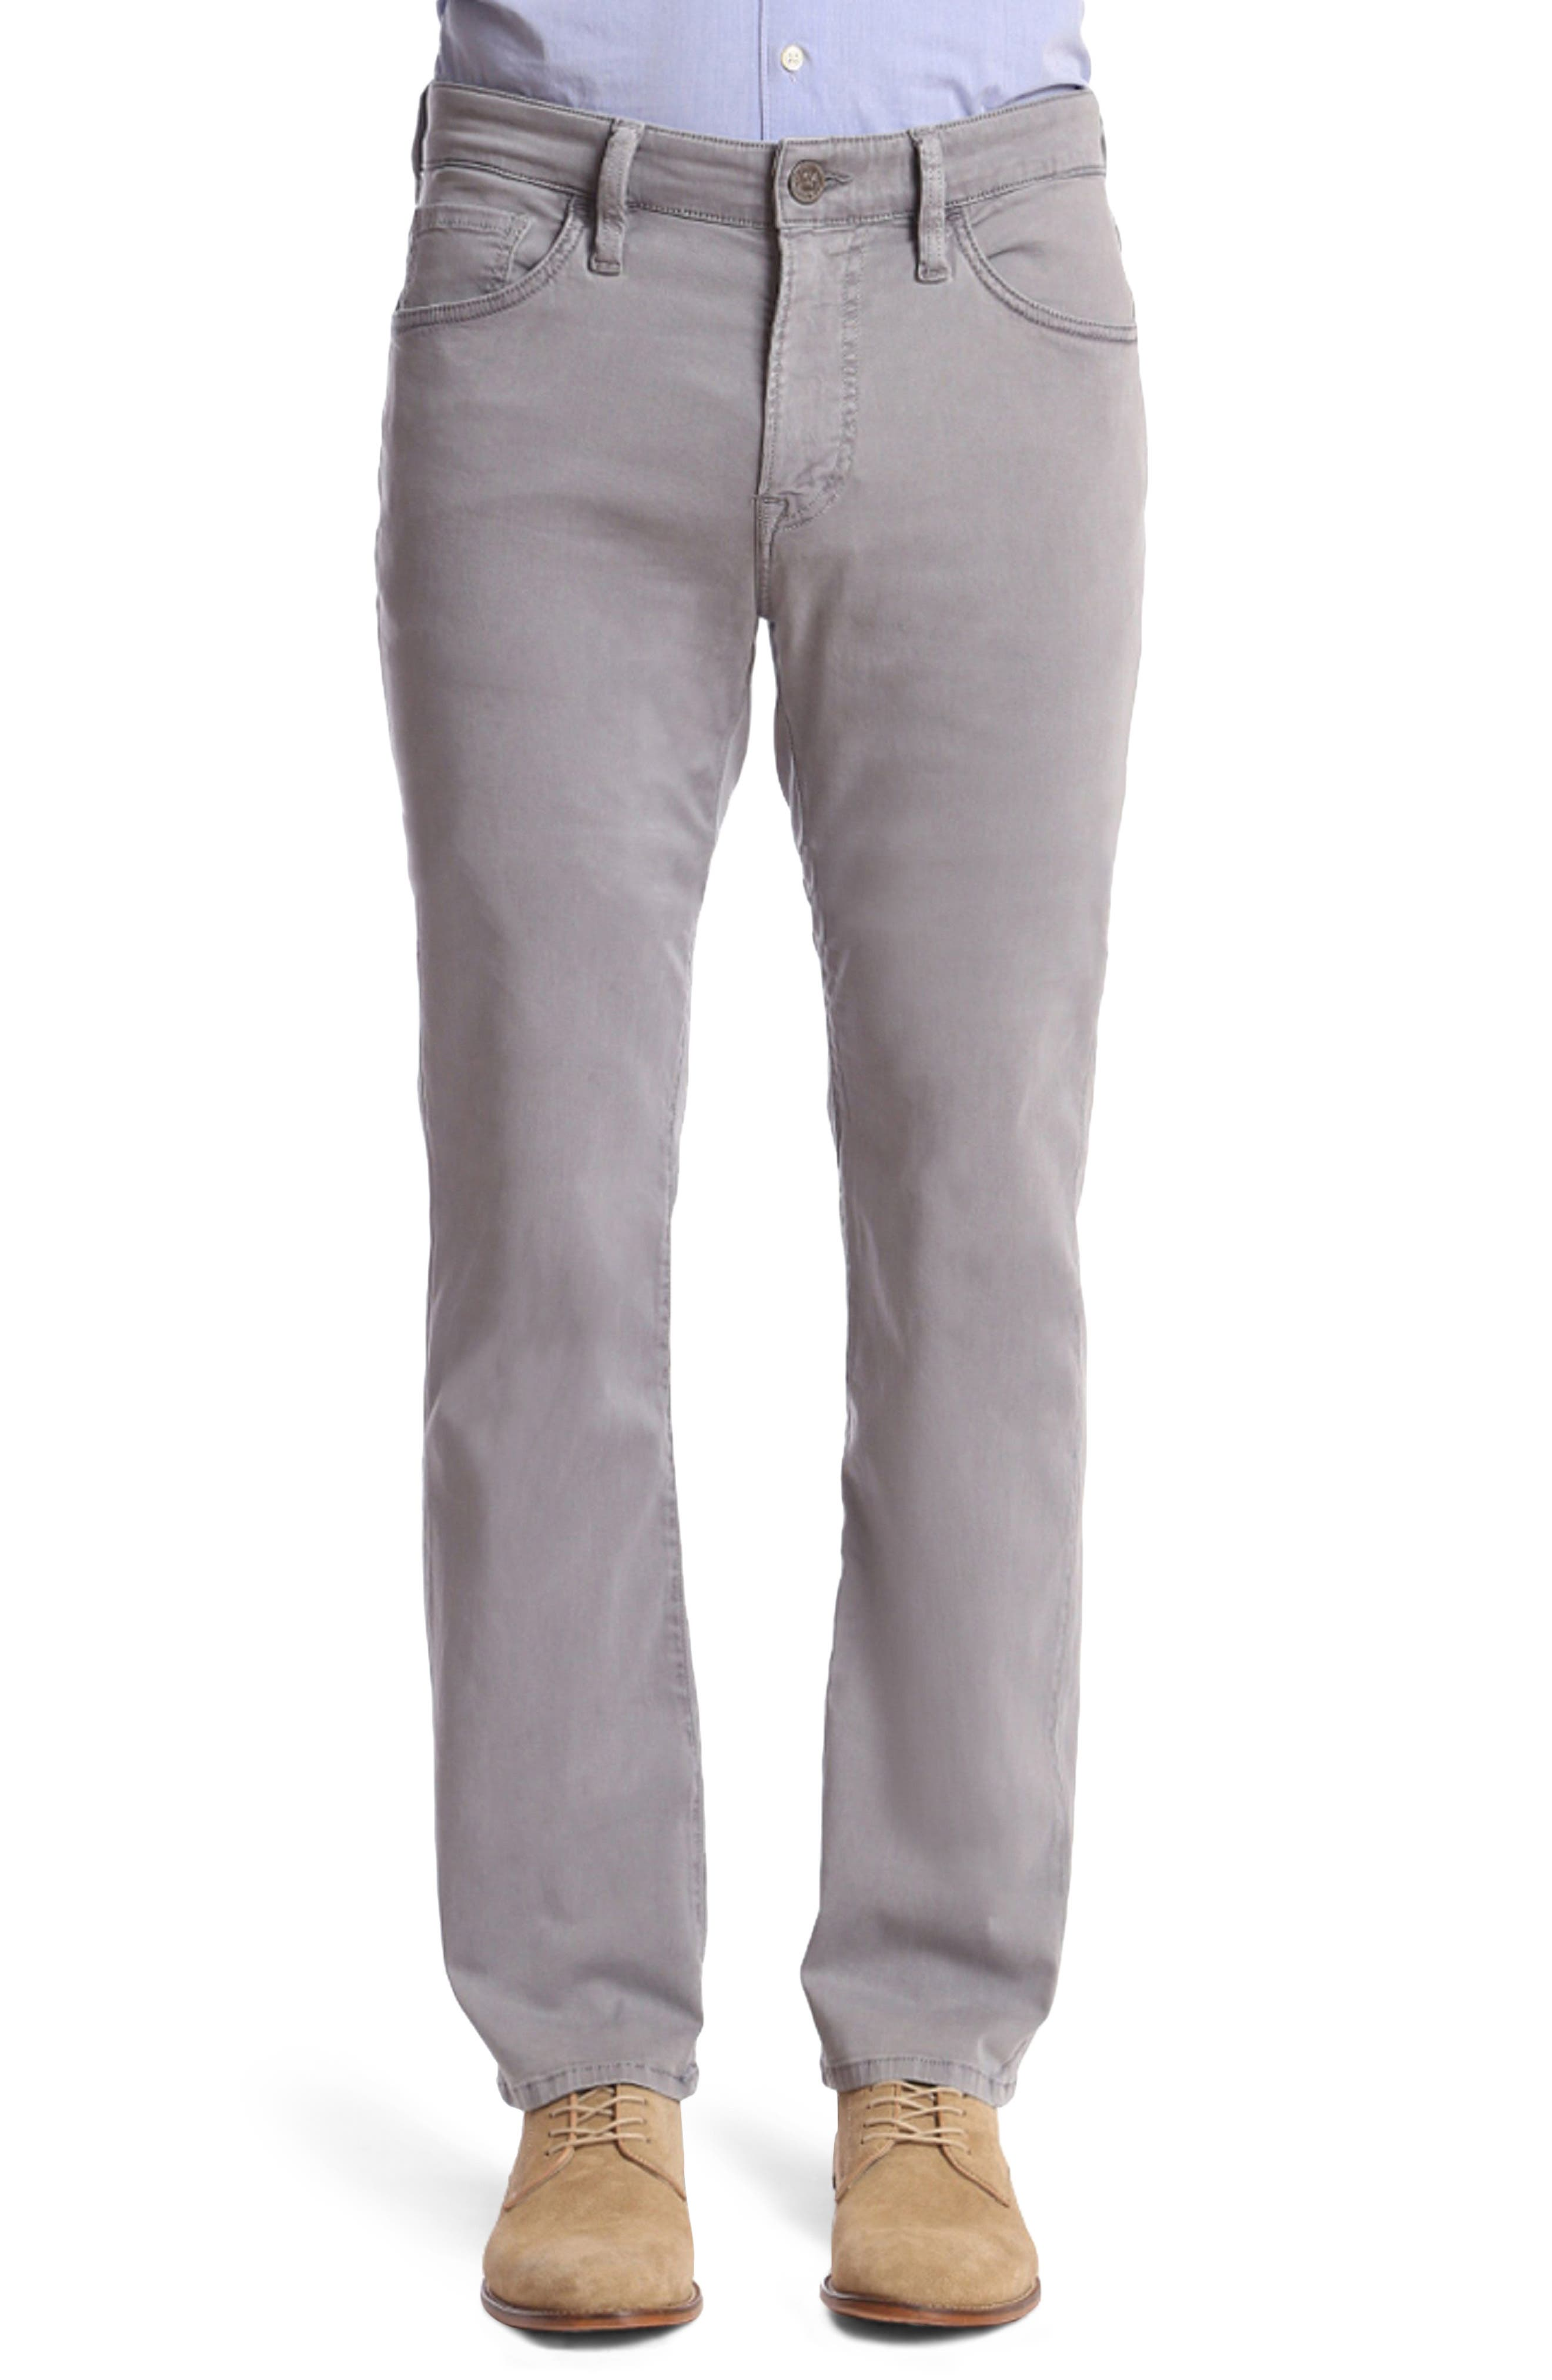 Men's 34 Heritage Courage Straight Fit Jeans, Size 34 x 32 - Grey